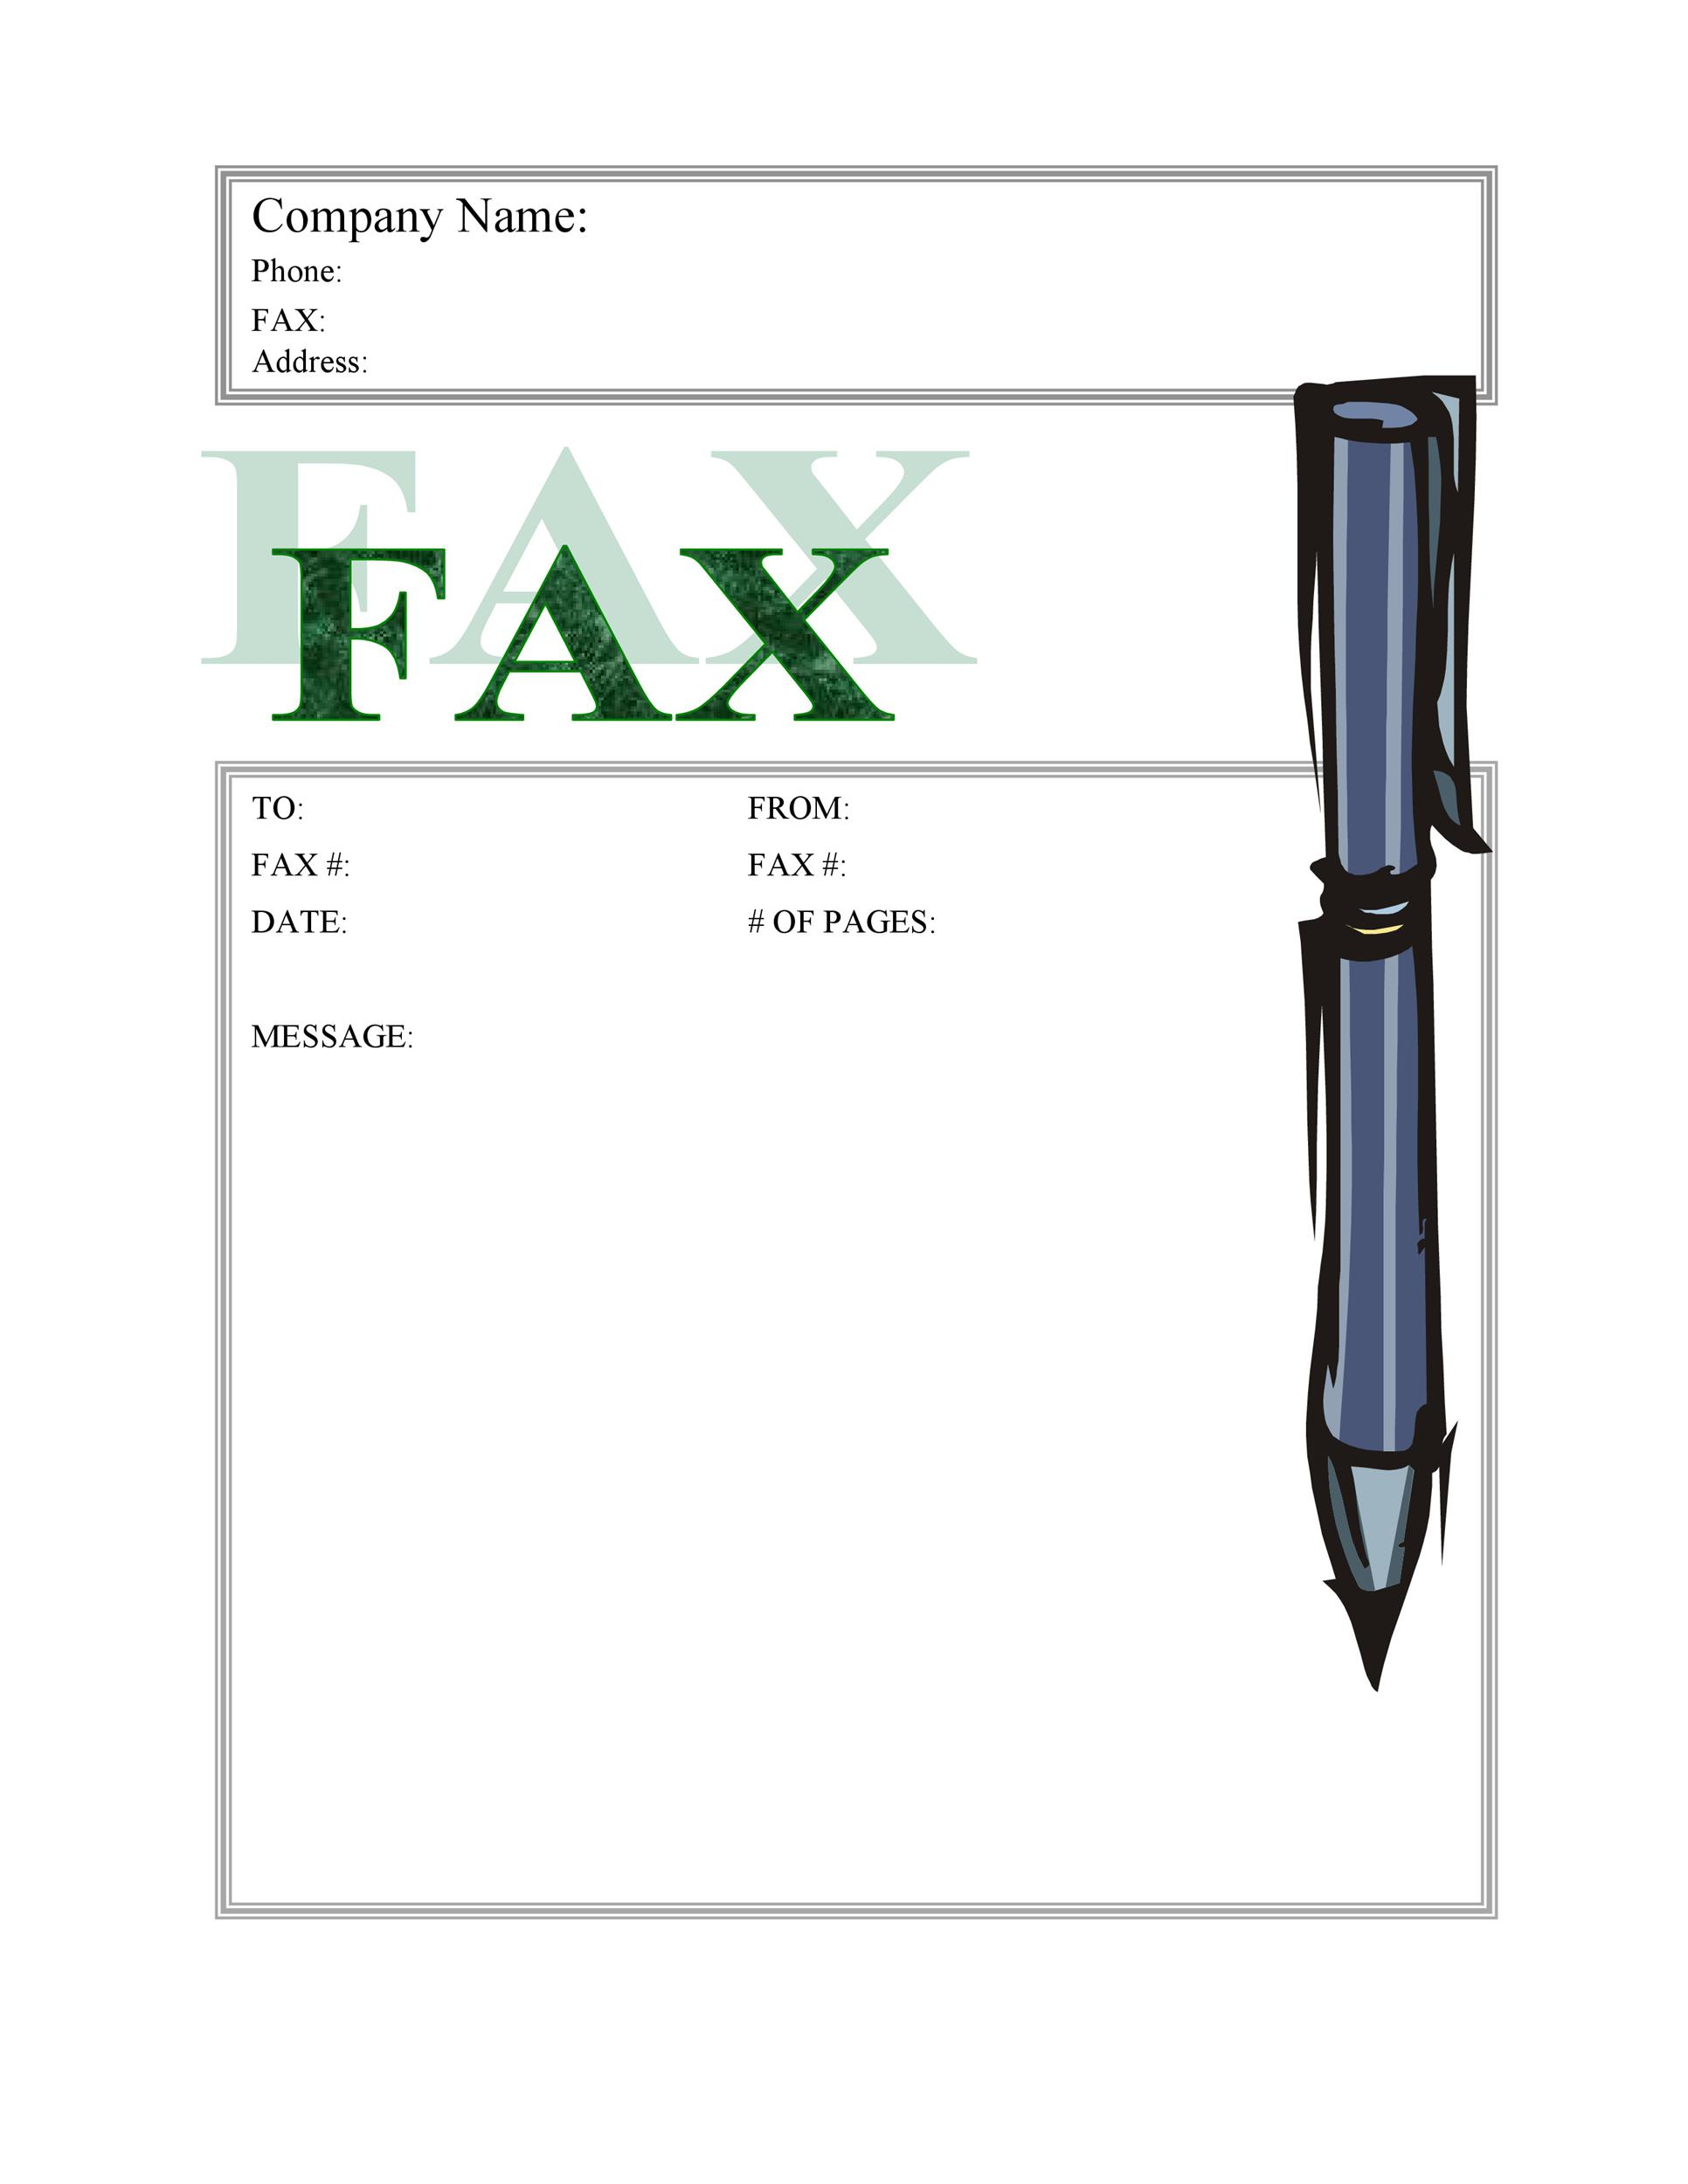 40 Printable Fax Cover Sheet Templates Template Lab – Business Fax Template